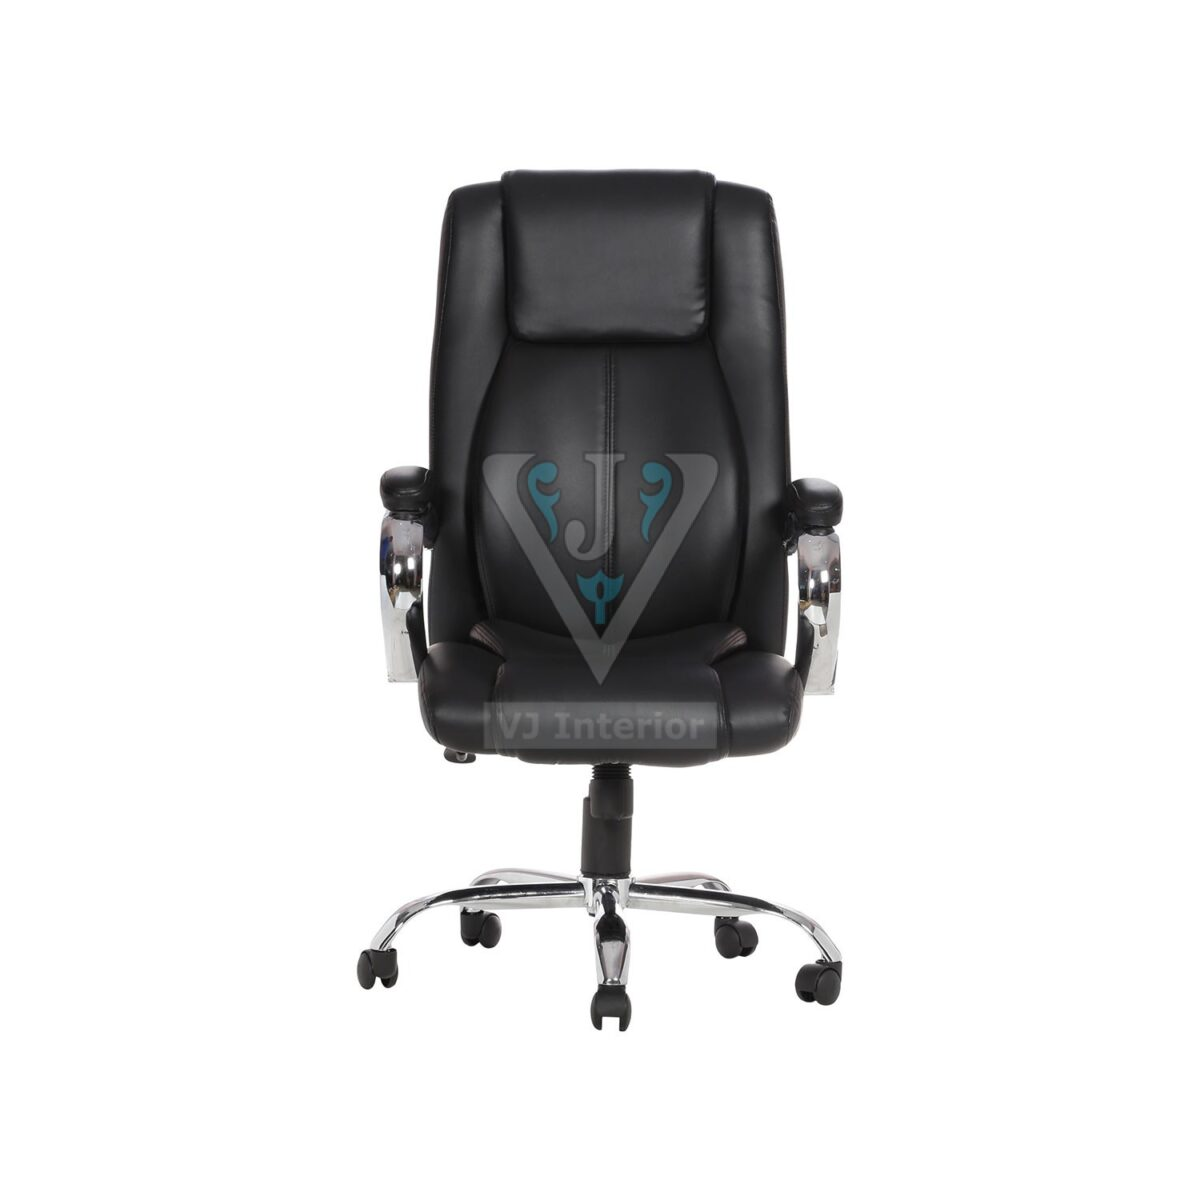 THE SANO HB EXECUTIVE CHAIR BLACK